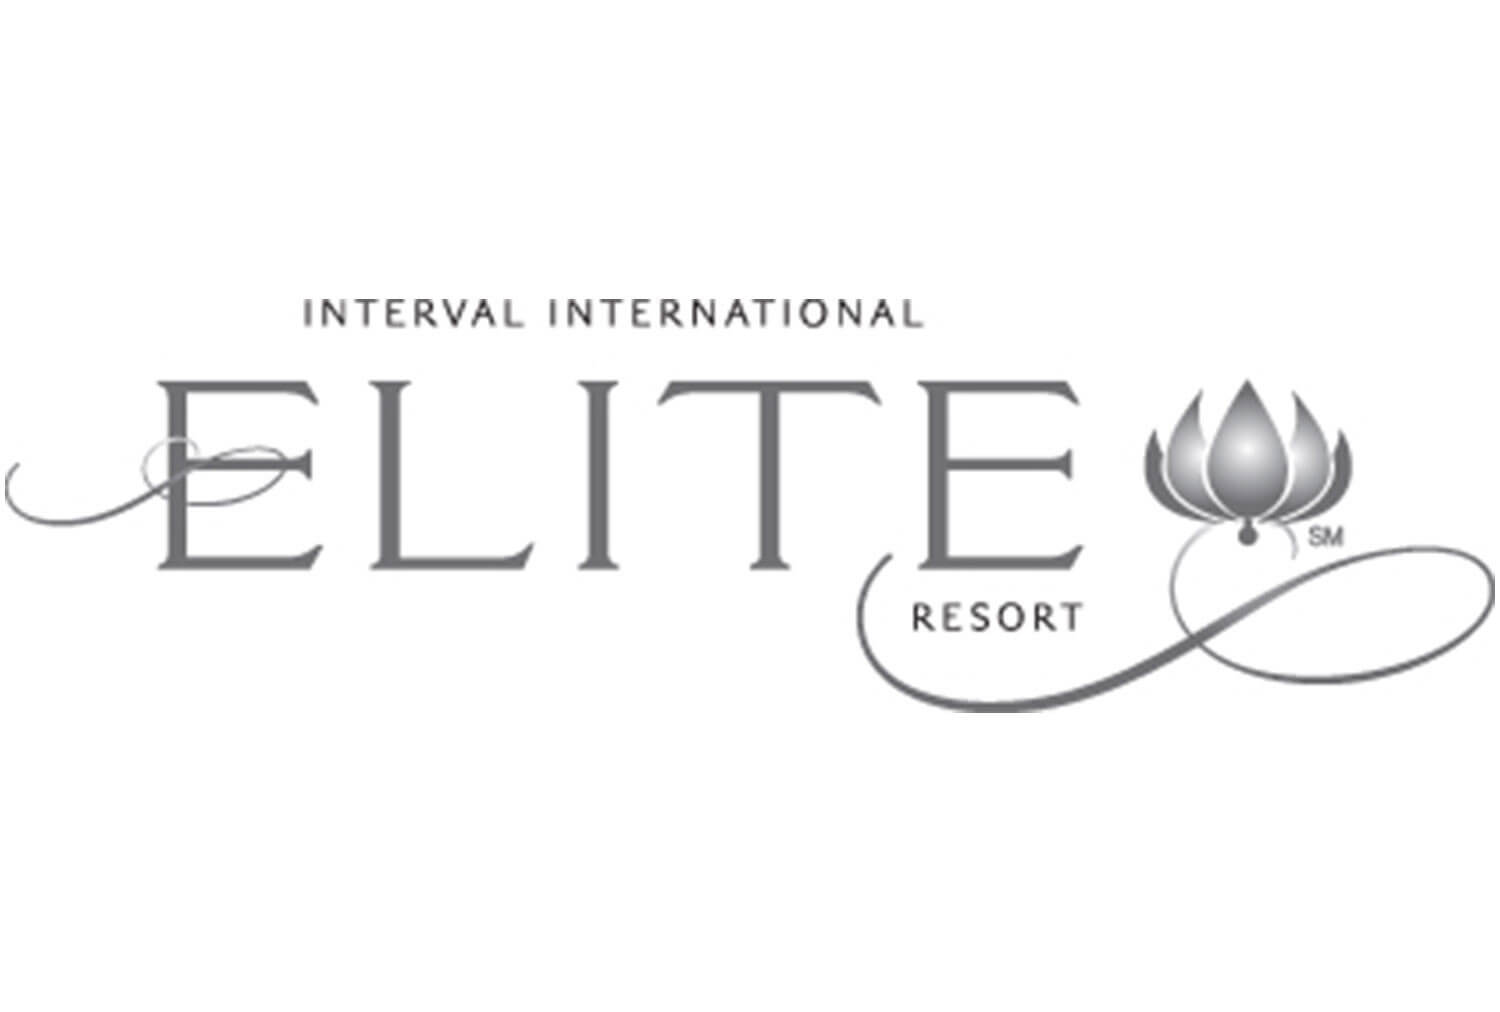 2016 Interval International Elite Resort | Westgate Park City Resort & Spa | Westgate Resorts